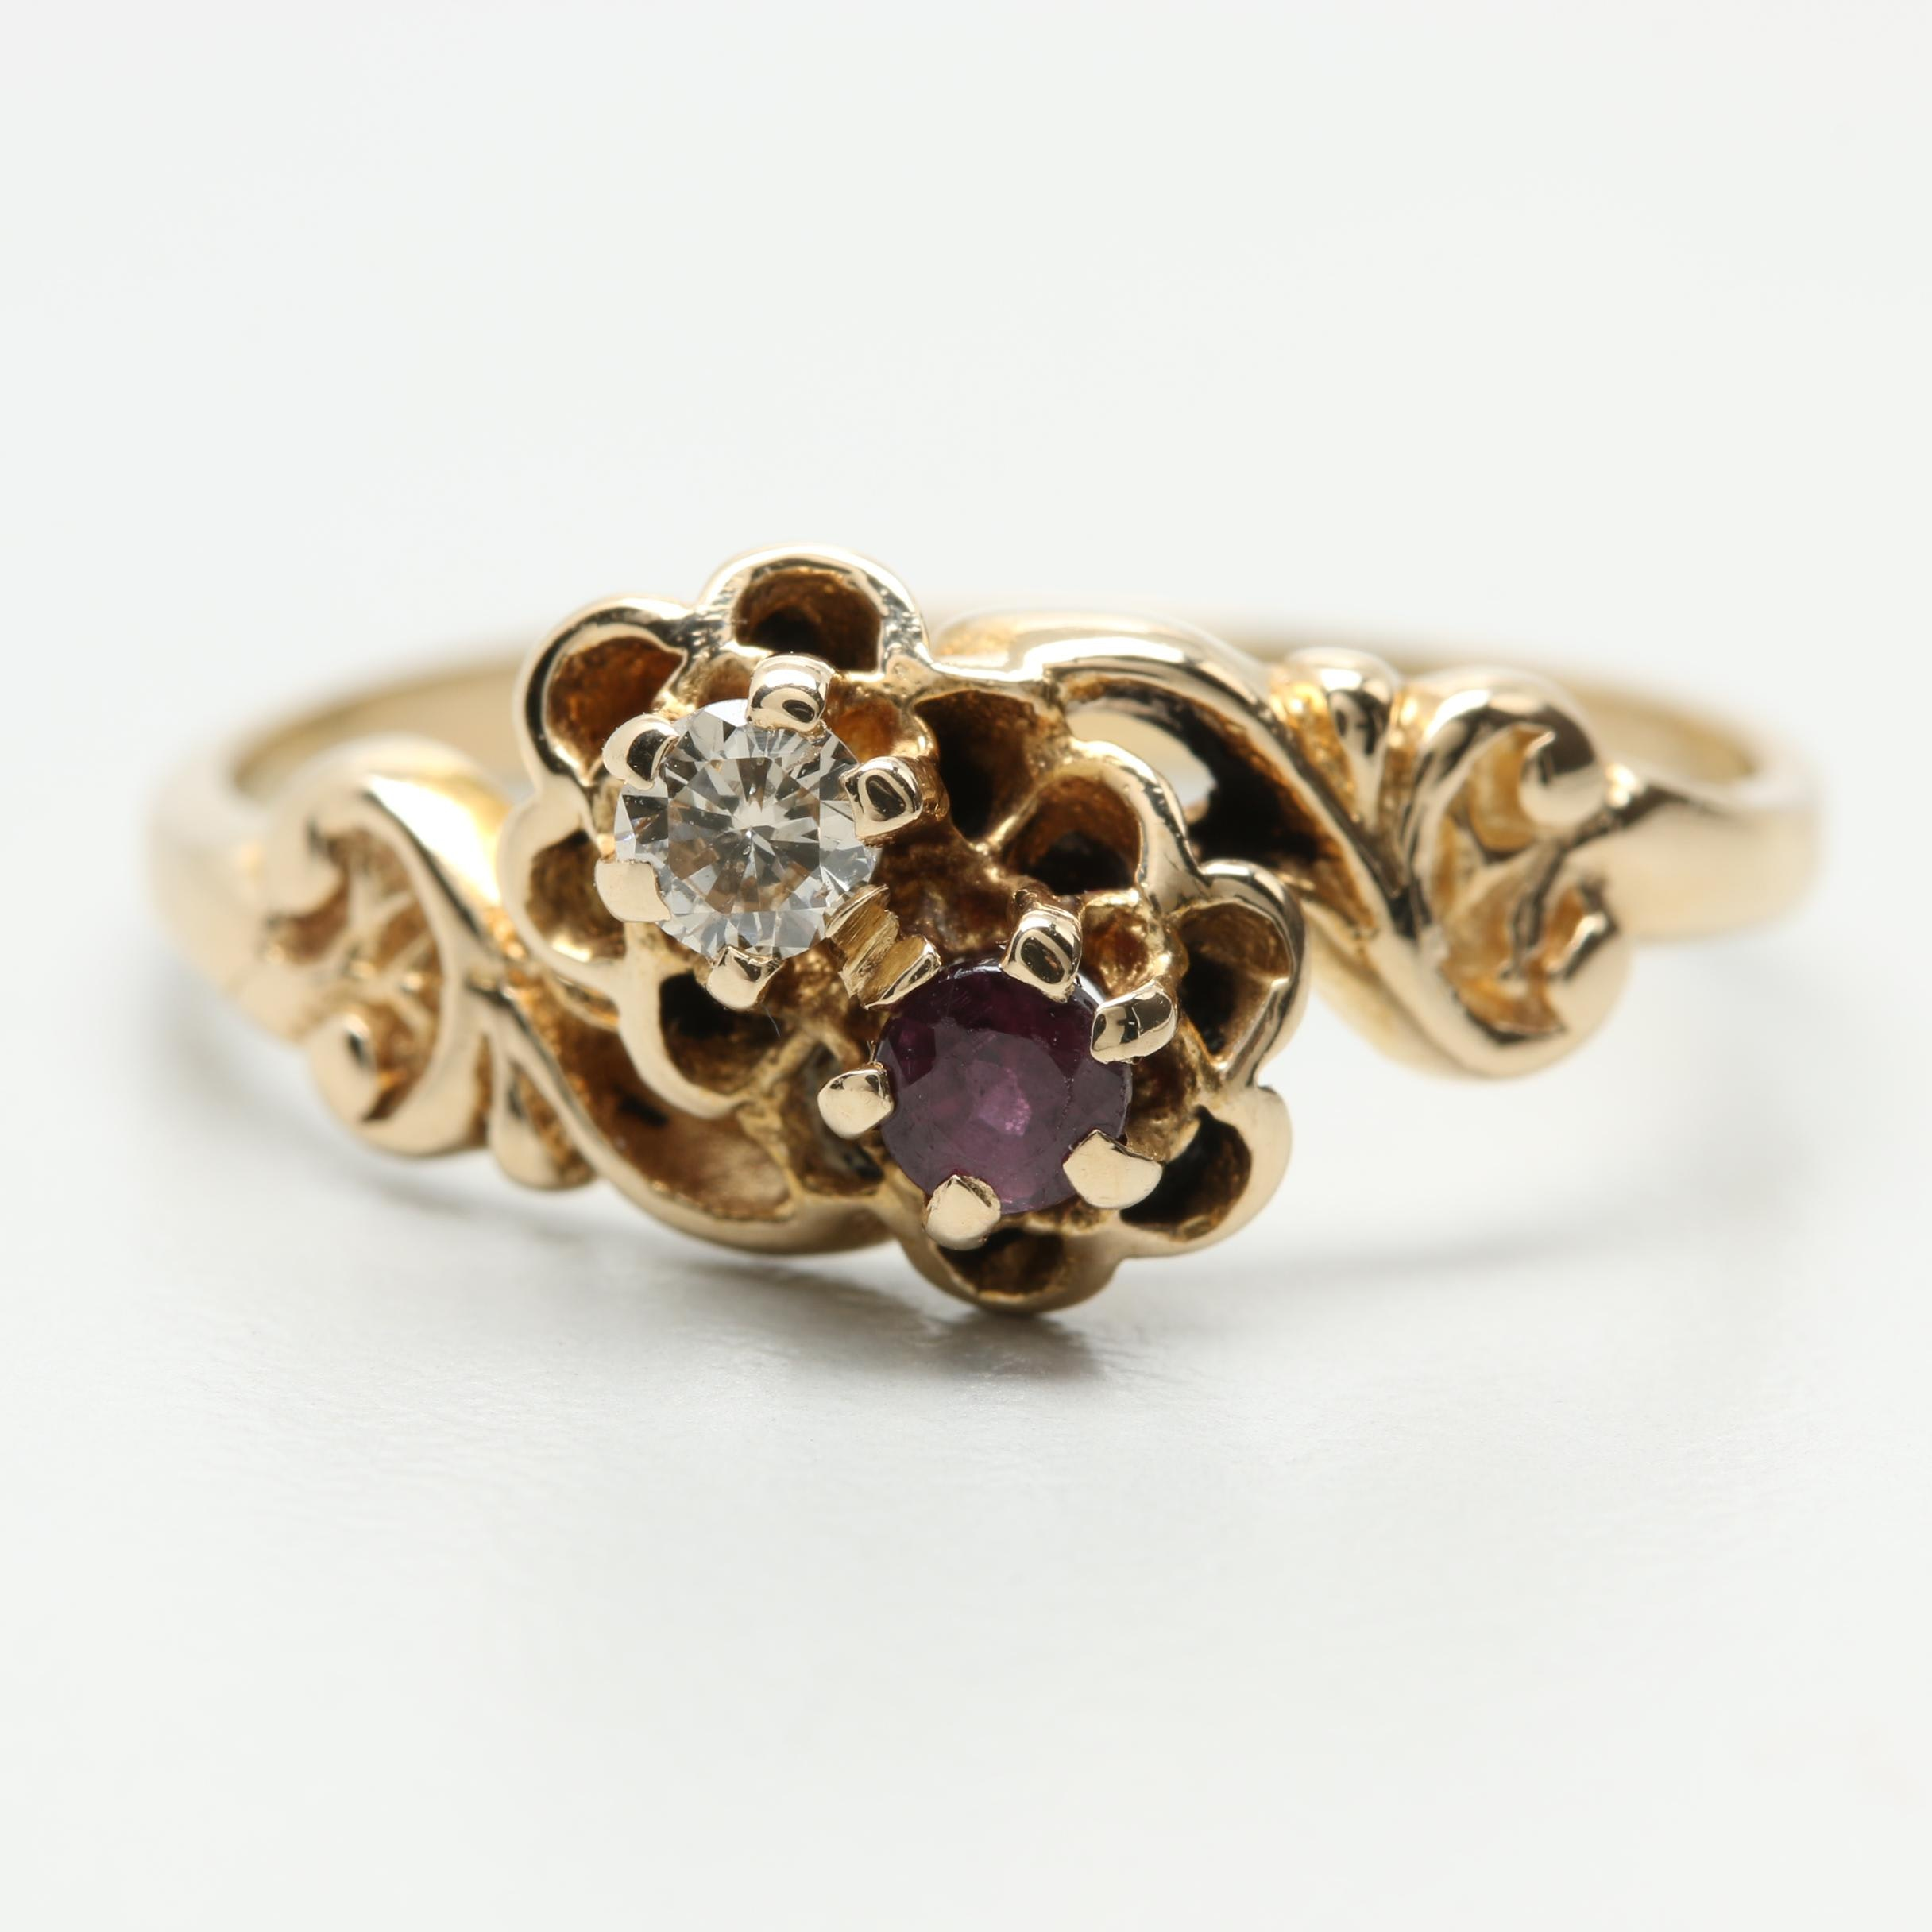 Victorian 14K Yellow Gold Diamond and Ruby Floral Ring